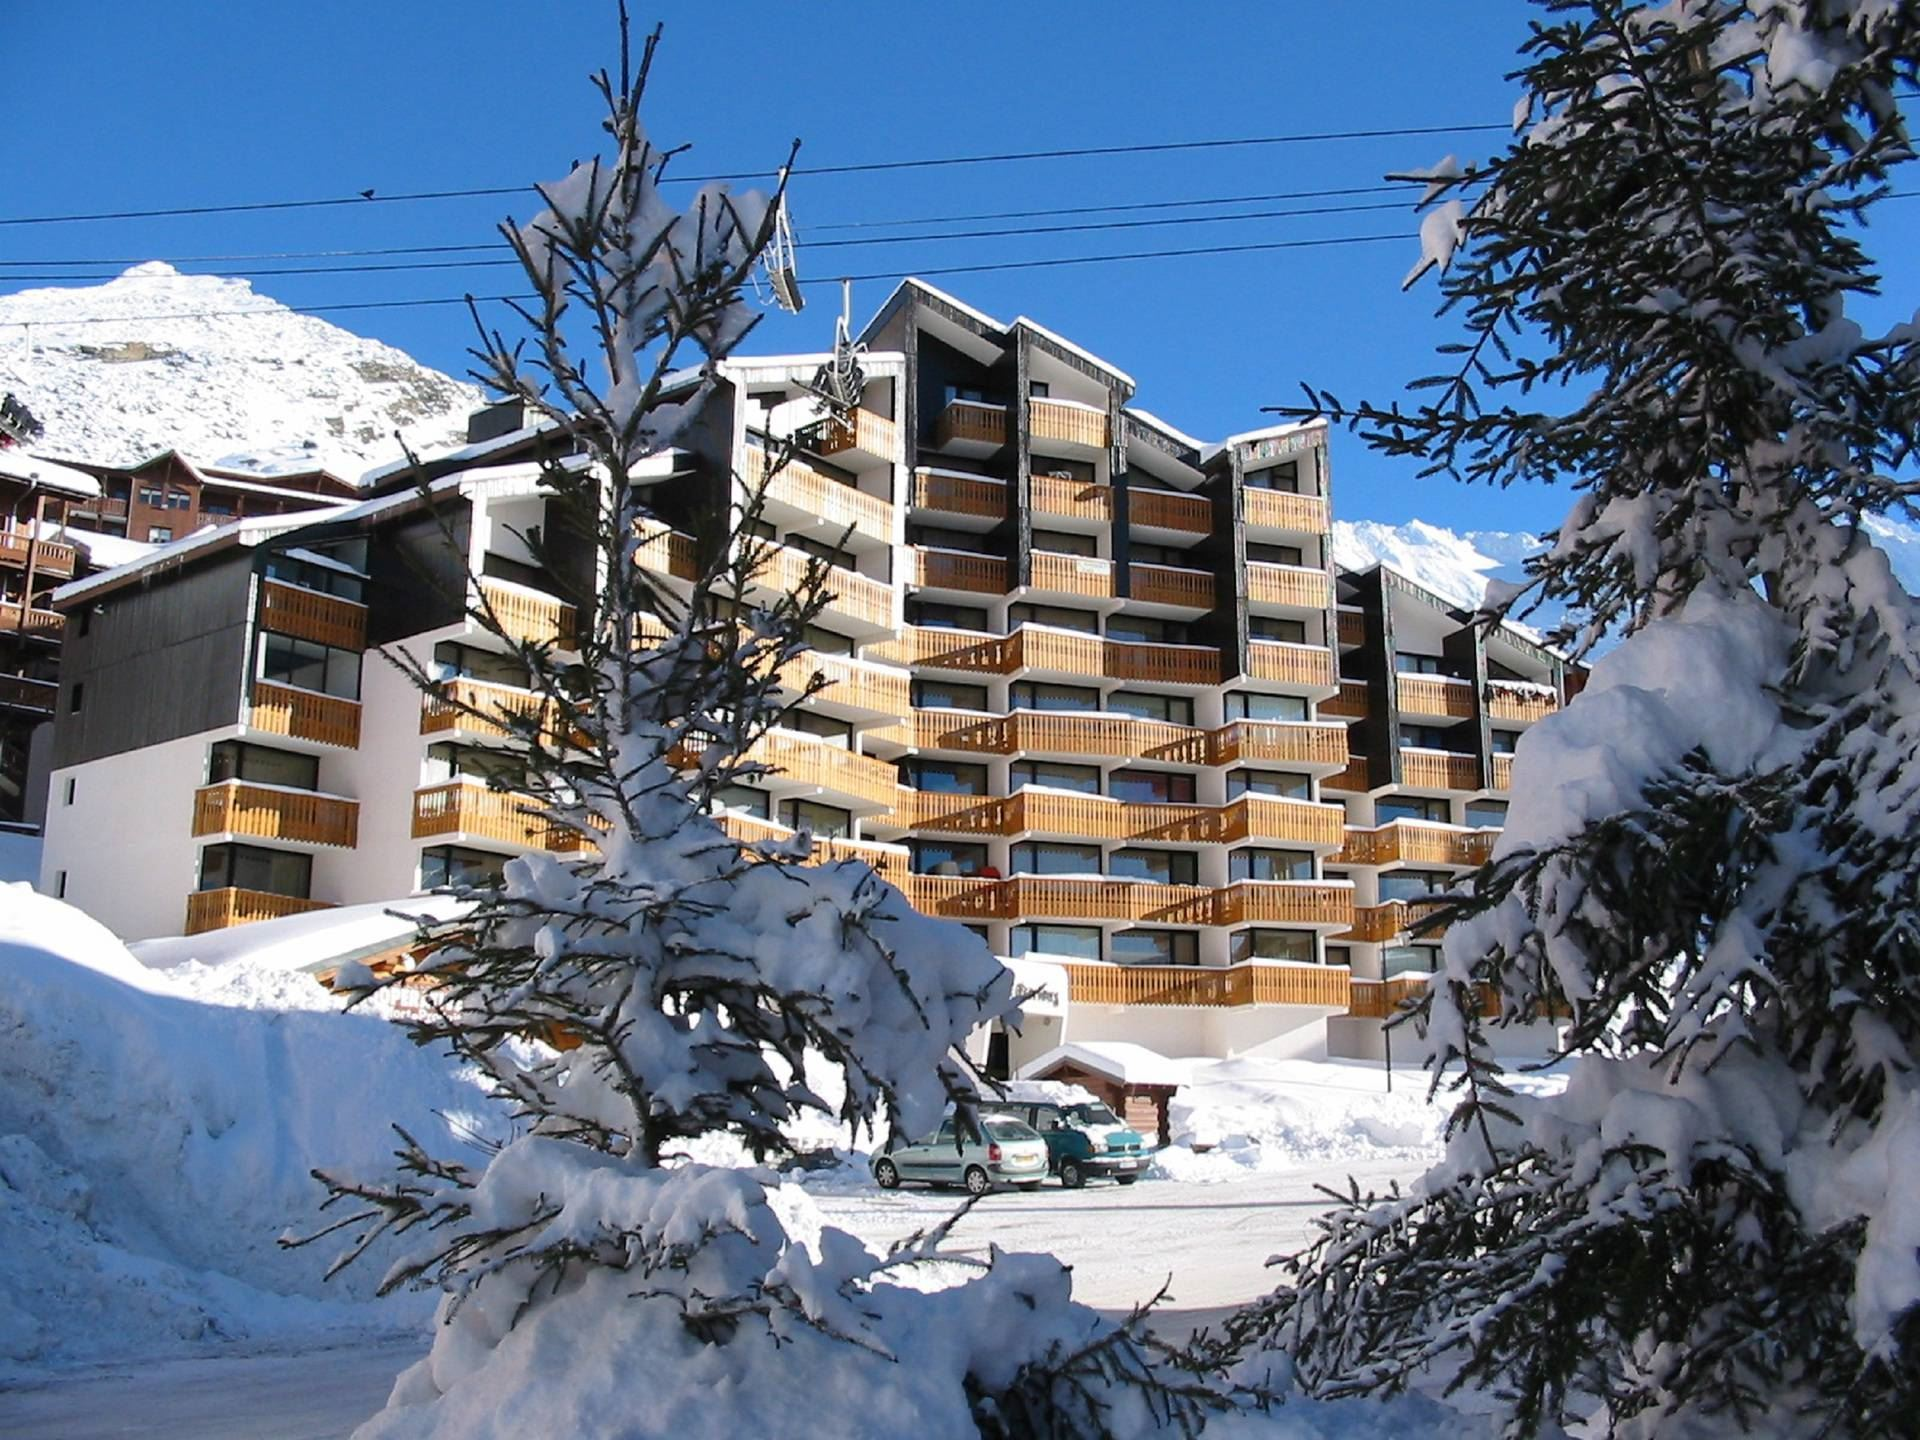 ETERLOUS 28 / 2 ROOMS 4 PERSONS - 3 SILVER SNOWFLAKES - VTI